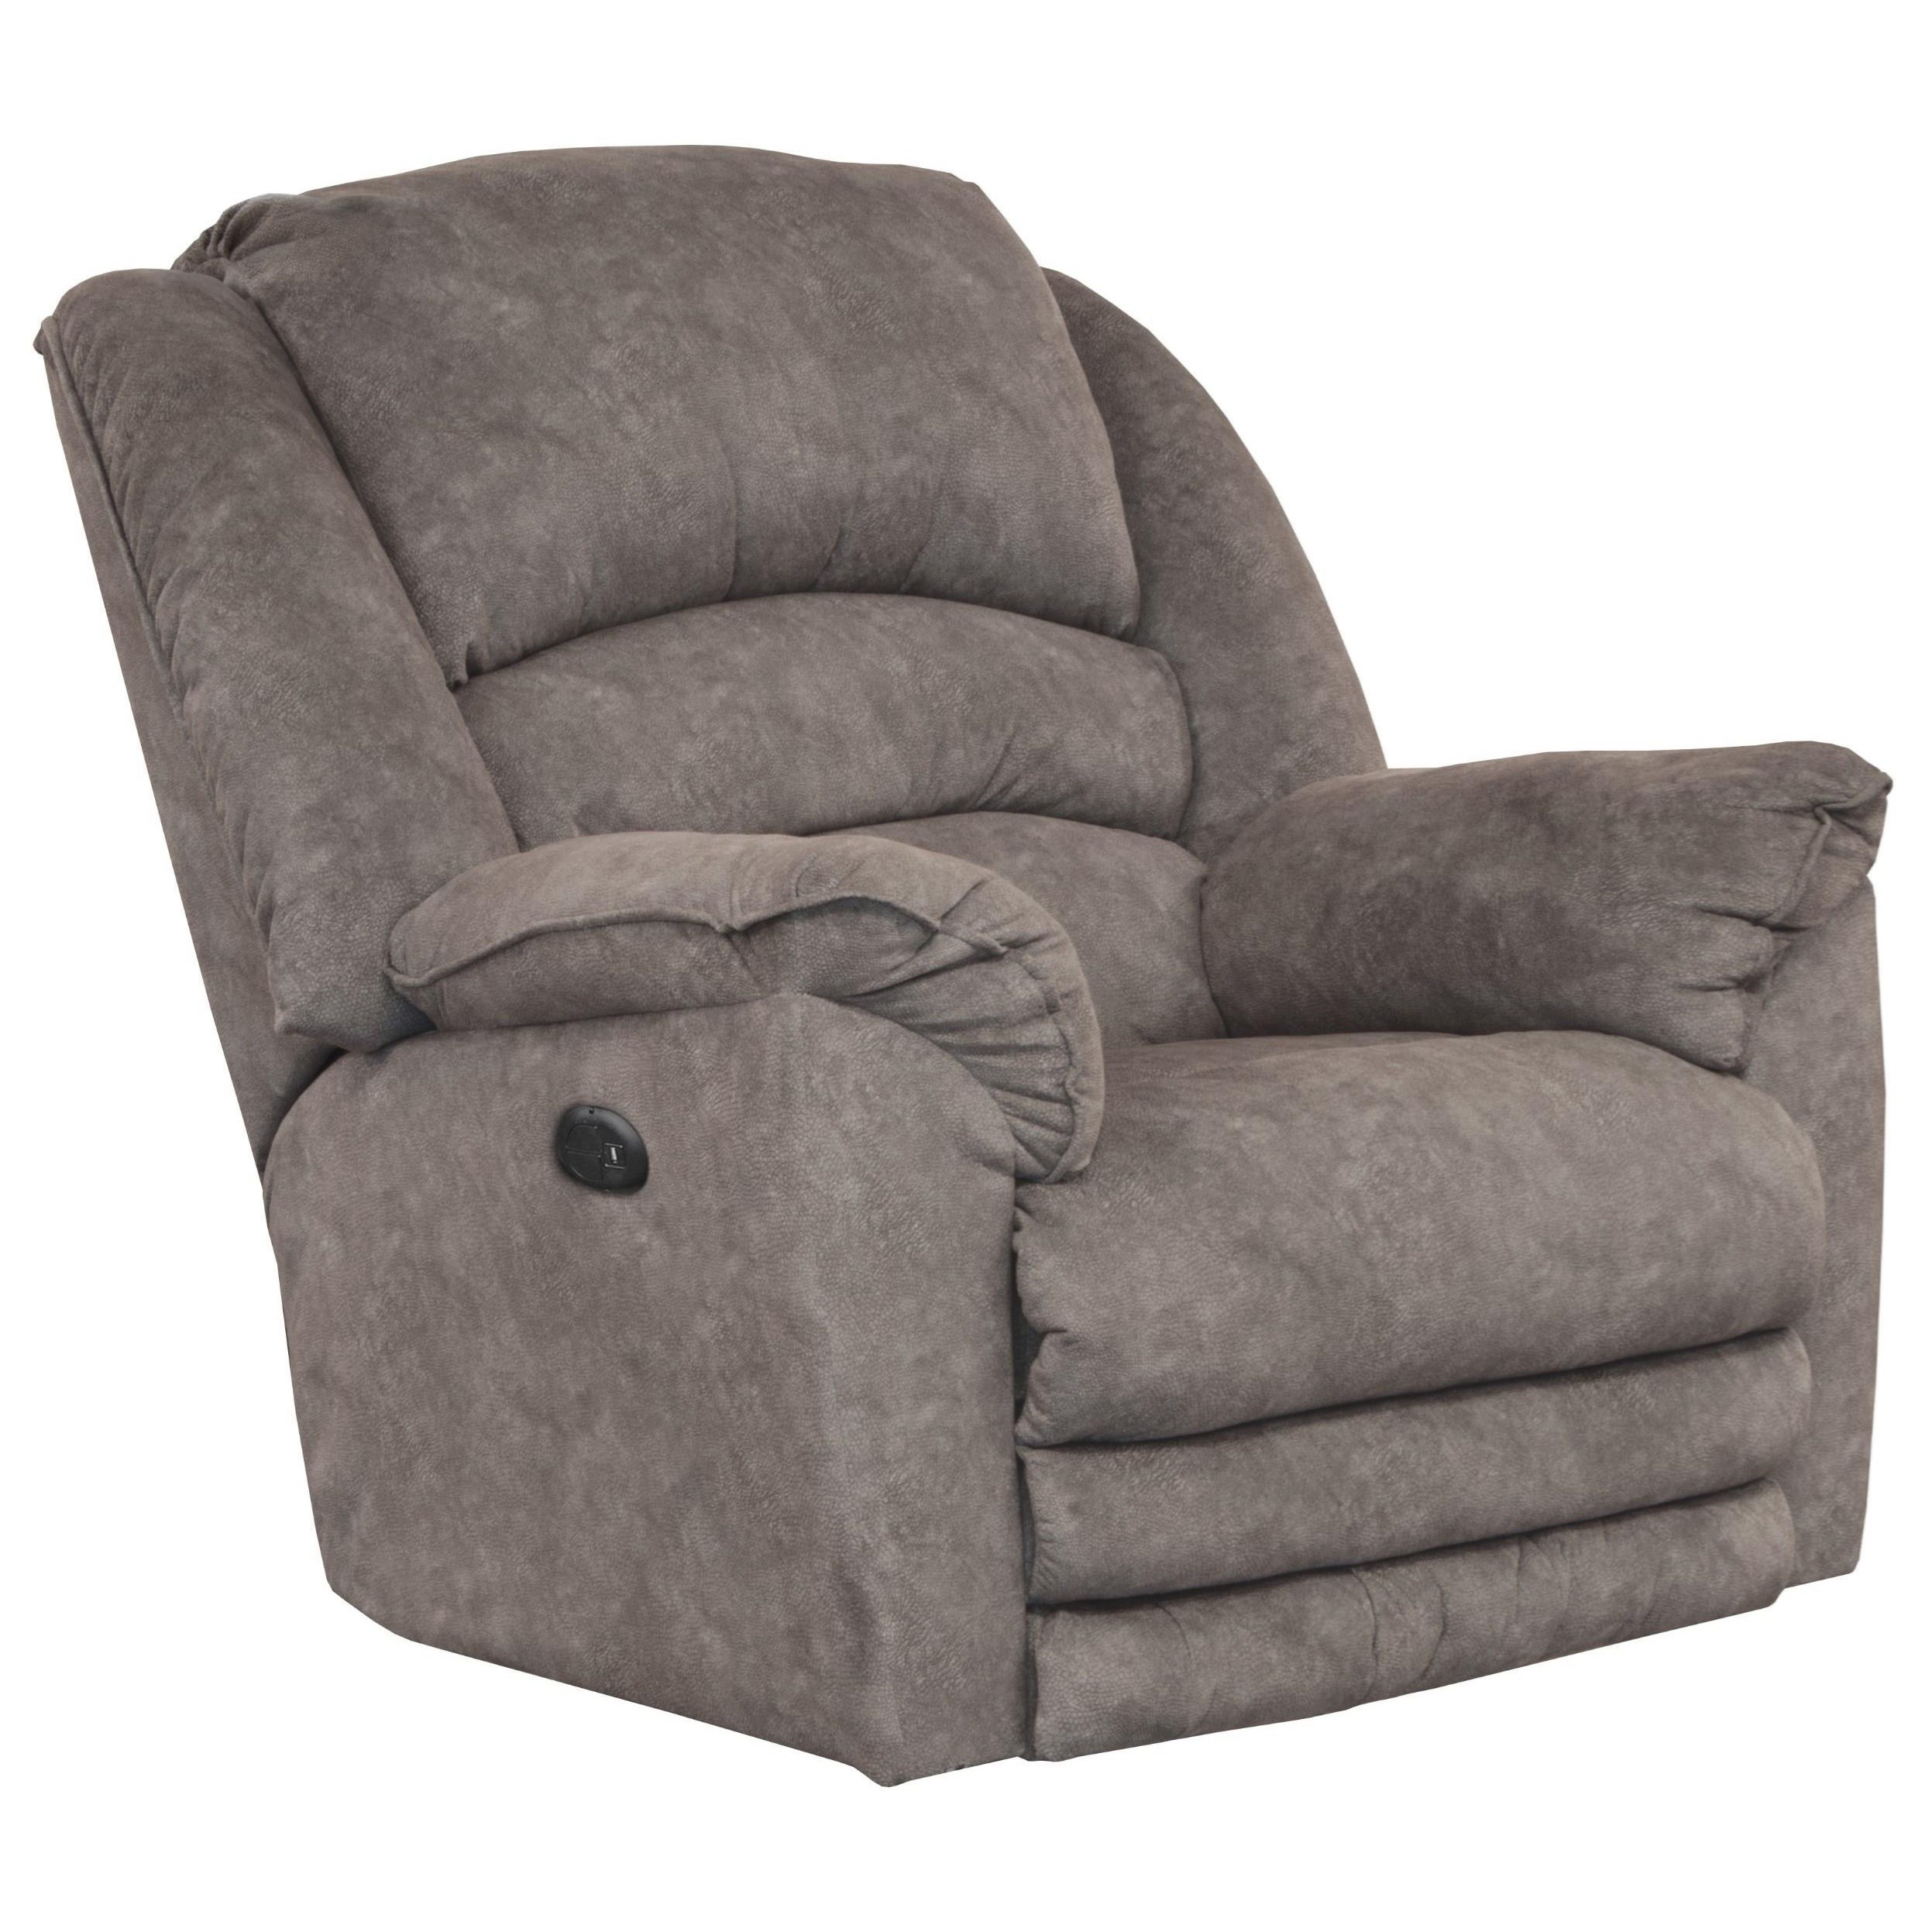 Rialto Power Lay Flat Recliner w/ Extended Footrest by Catnapper at Zak's Home Outlet